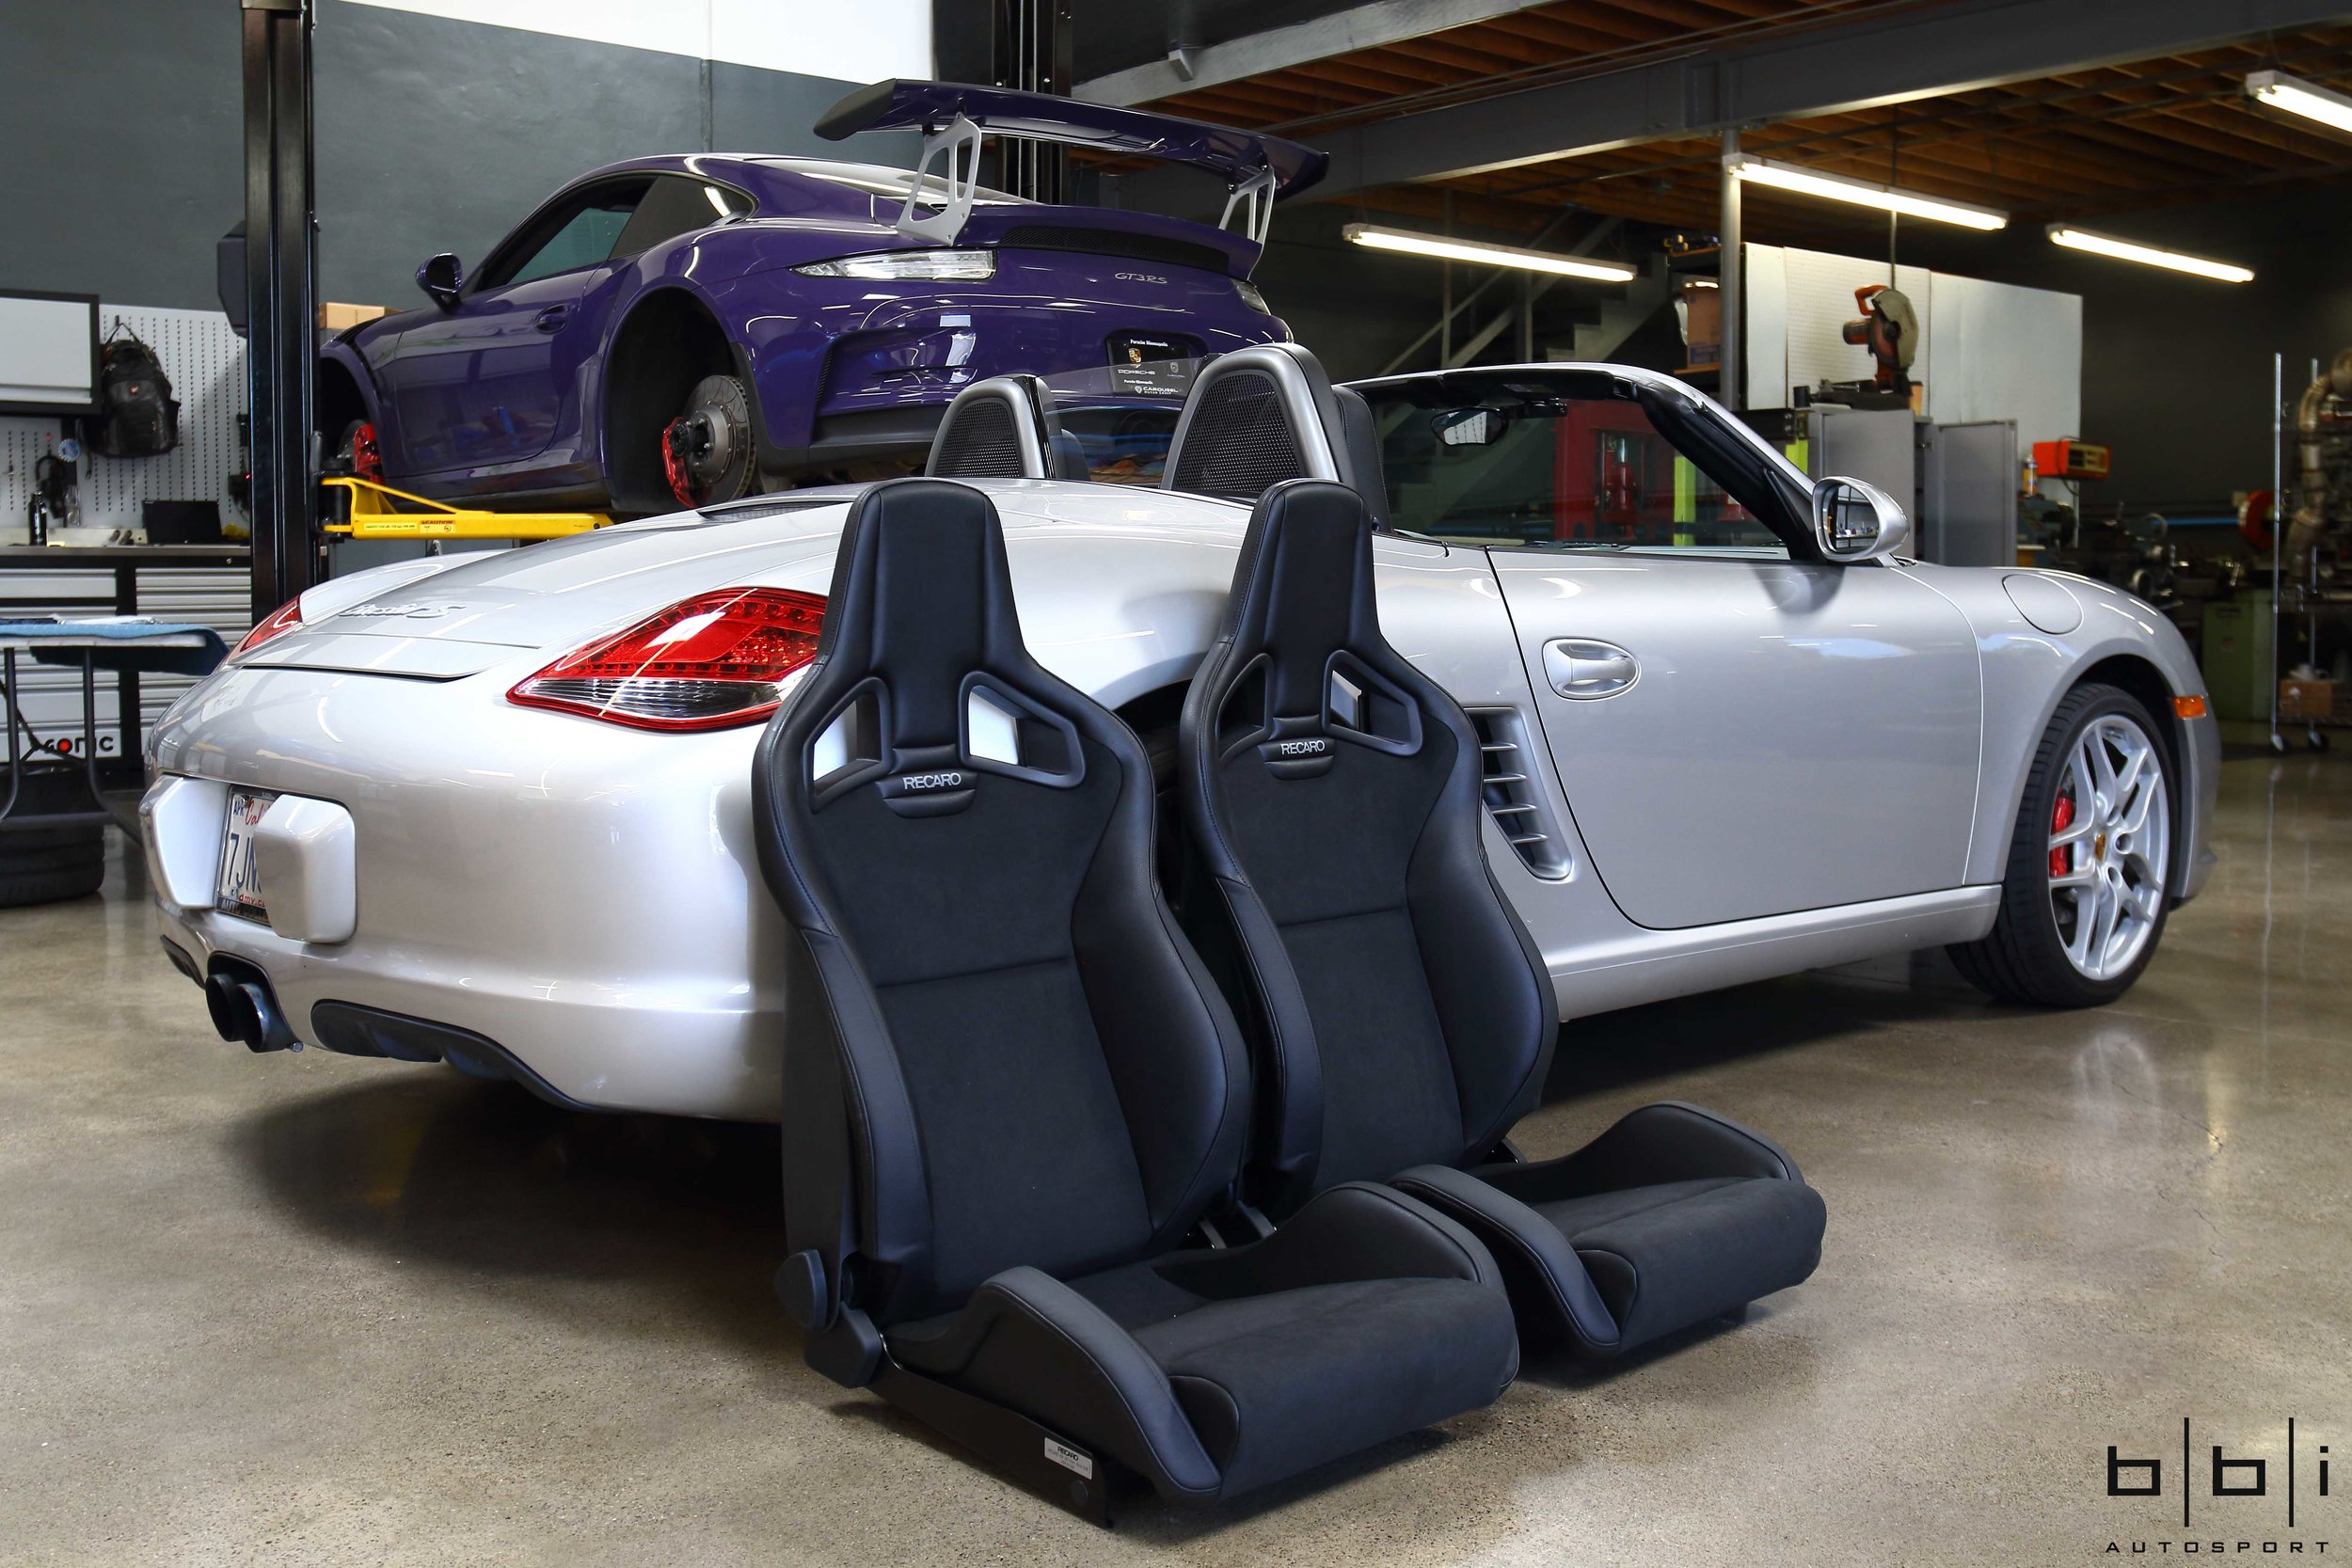 Factory seats often leave much to be desired and this client with a Porsche 987 Boxster felt that the factory seats lack support so we replaced it with the popular RECARO reclining seats for improved ergonomics and support. Mounted on our BBi Autosport Seat Base and Slider Kit, the Sportster CS seats provides a sleek, distinct, eye-catching look. The integrated headrest and aggressive bolstering are reminiscent of racing seats while the comfort and ergonomic qualities are evocative of the world's top sport luxury automobiles.